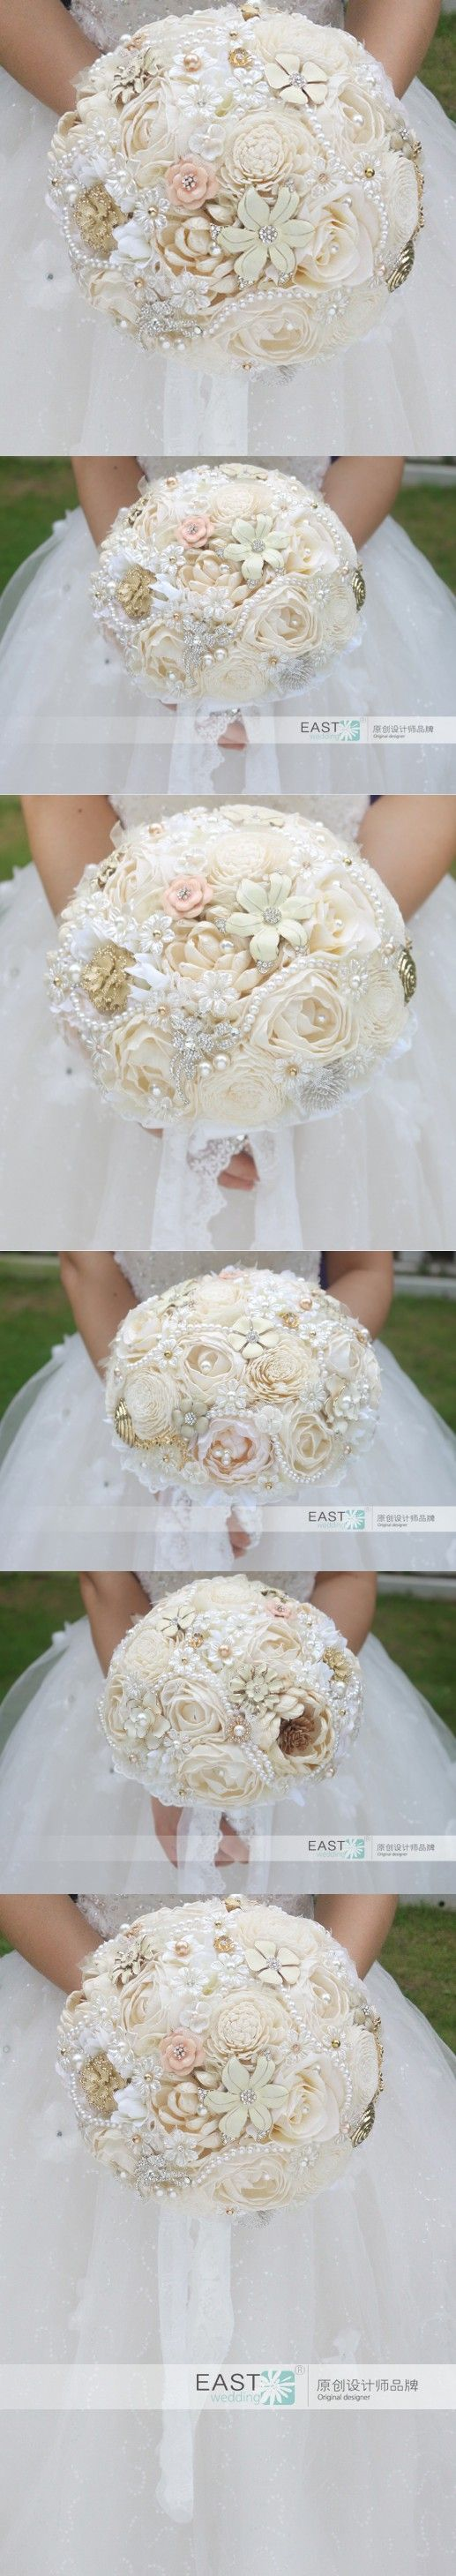 579 best modern wedding bouquets images on pinterest branches cheap brooch korea buy quality brooch dragon directly from china flower crystal brooch suppliers diy ivory brooch bouquet plants flower bride bridal dhlflorist Gallery